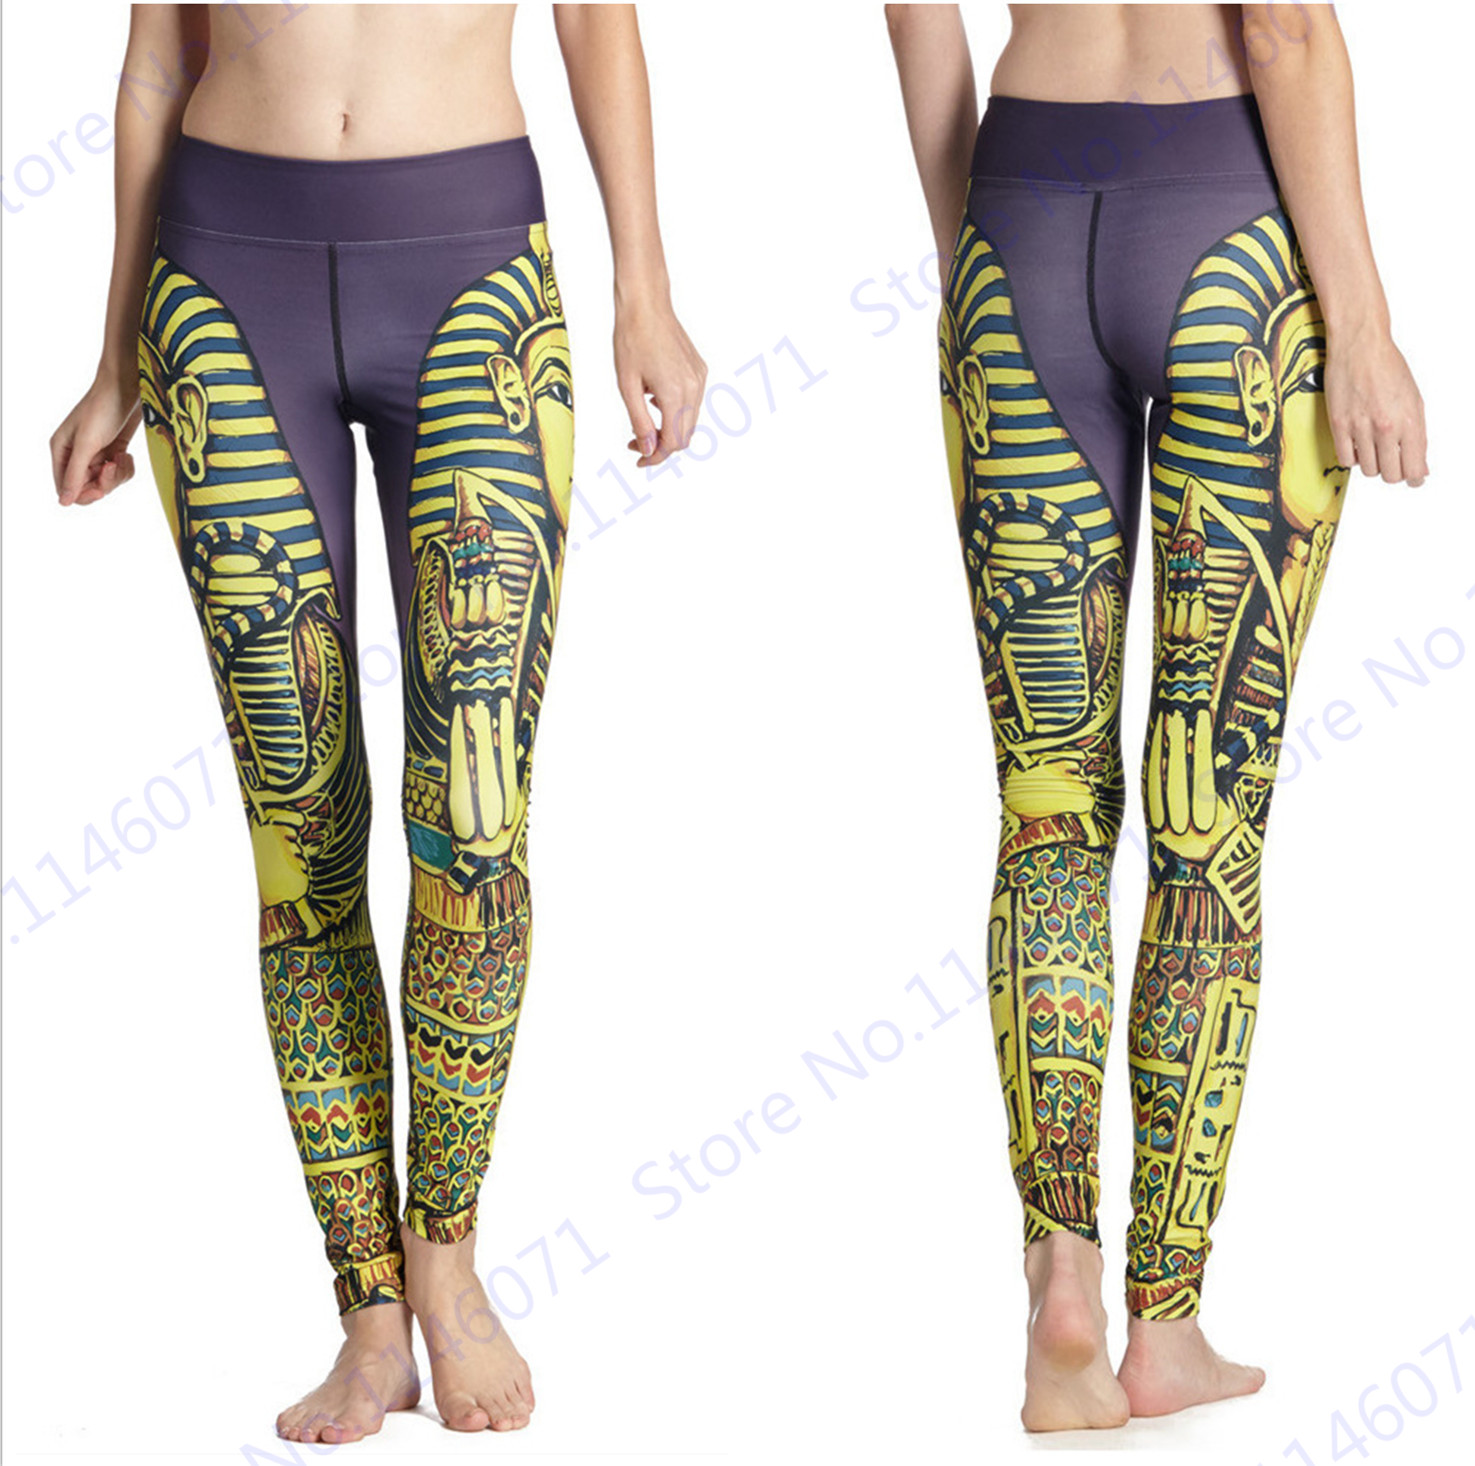 Doyeah Tights Promotion-Shop For Promotional Doyeah Tights